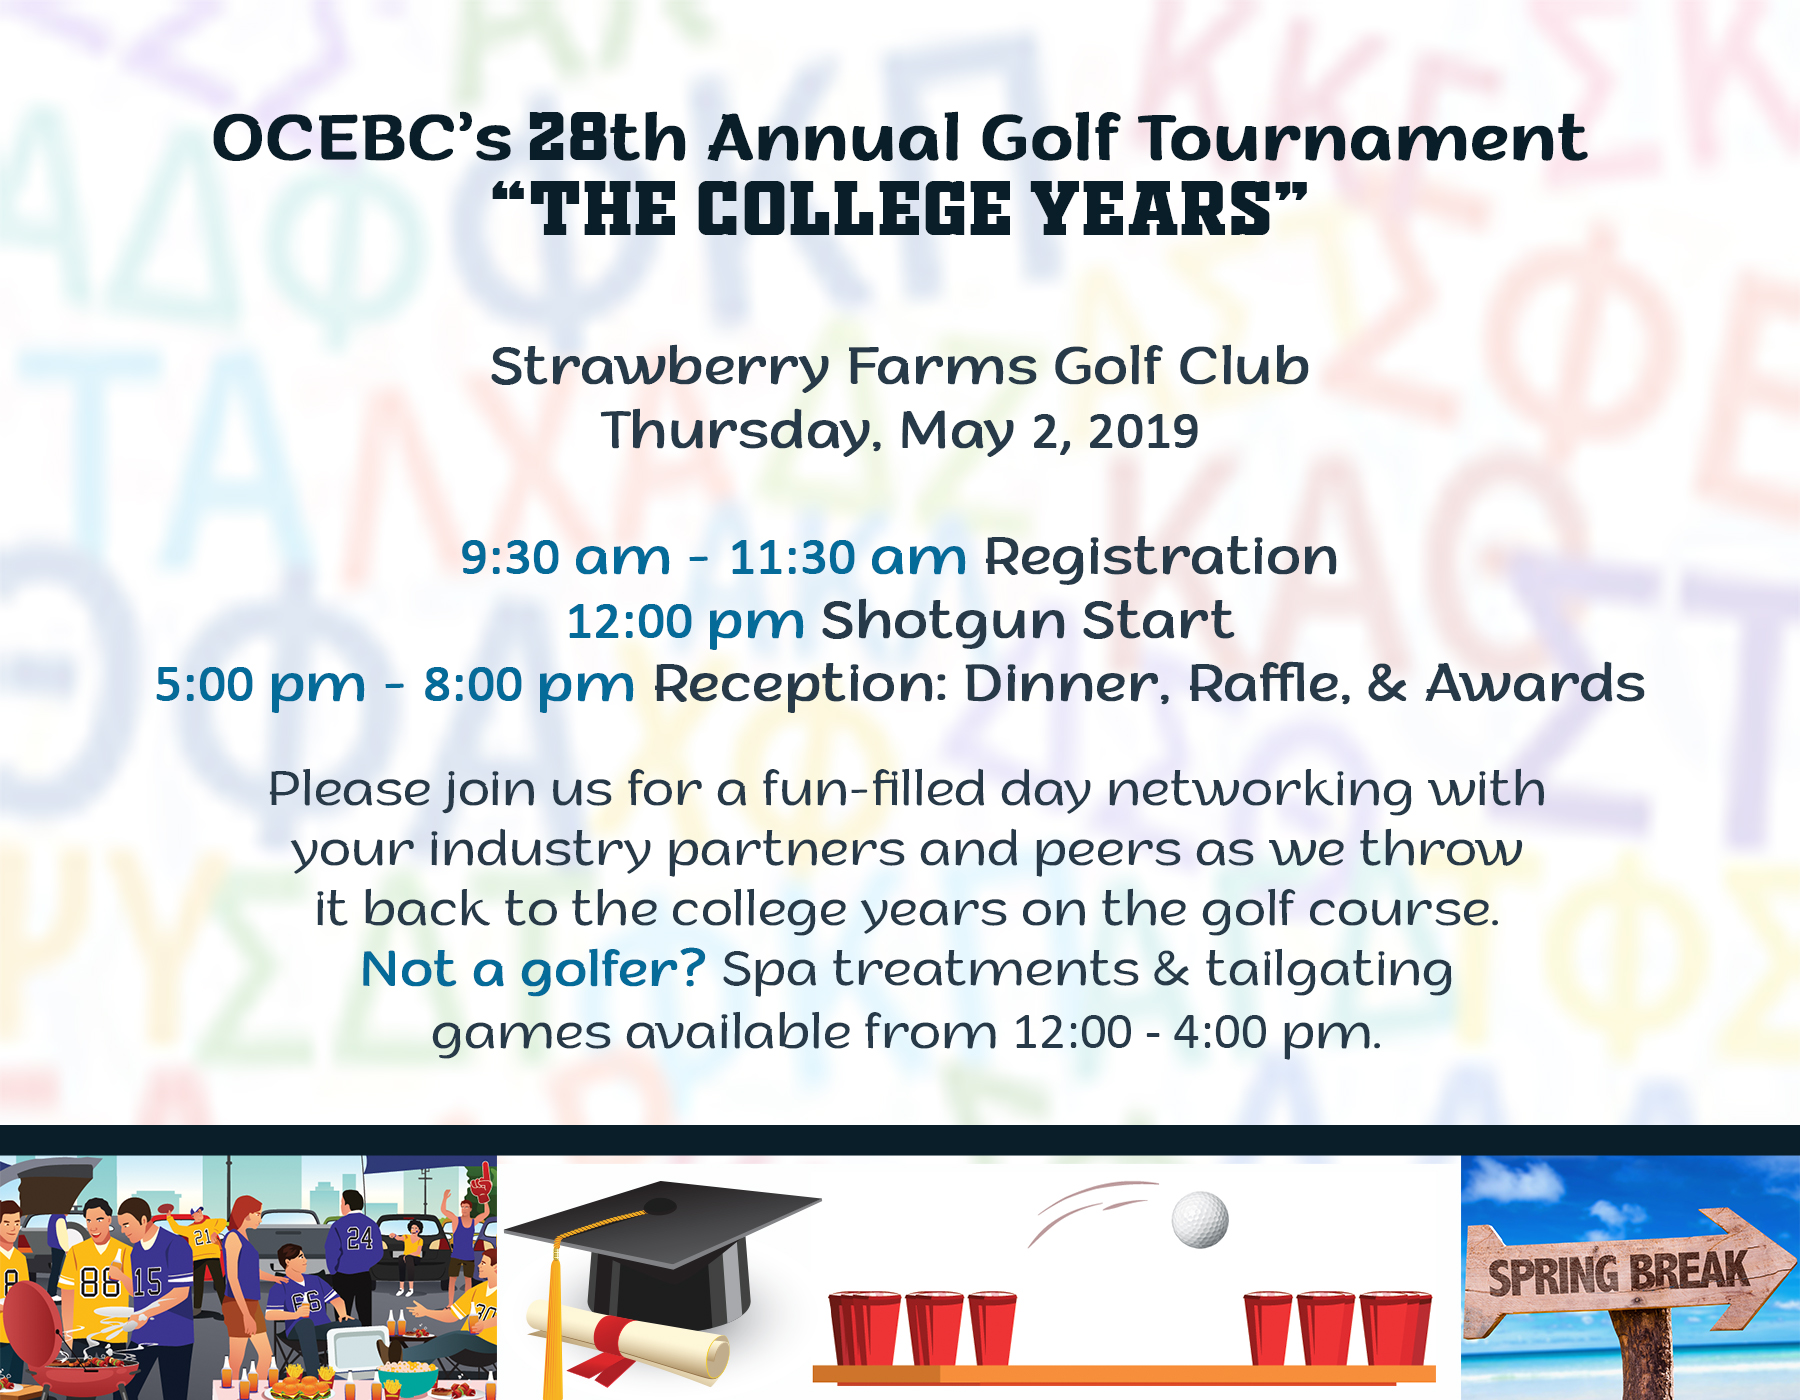 OCEBC 28th Annual Golf Tournament @ Strawberry Farms Golf Club